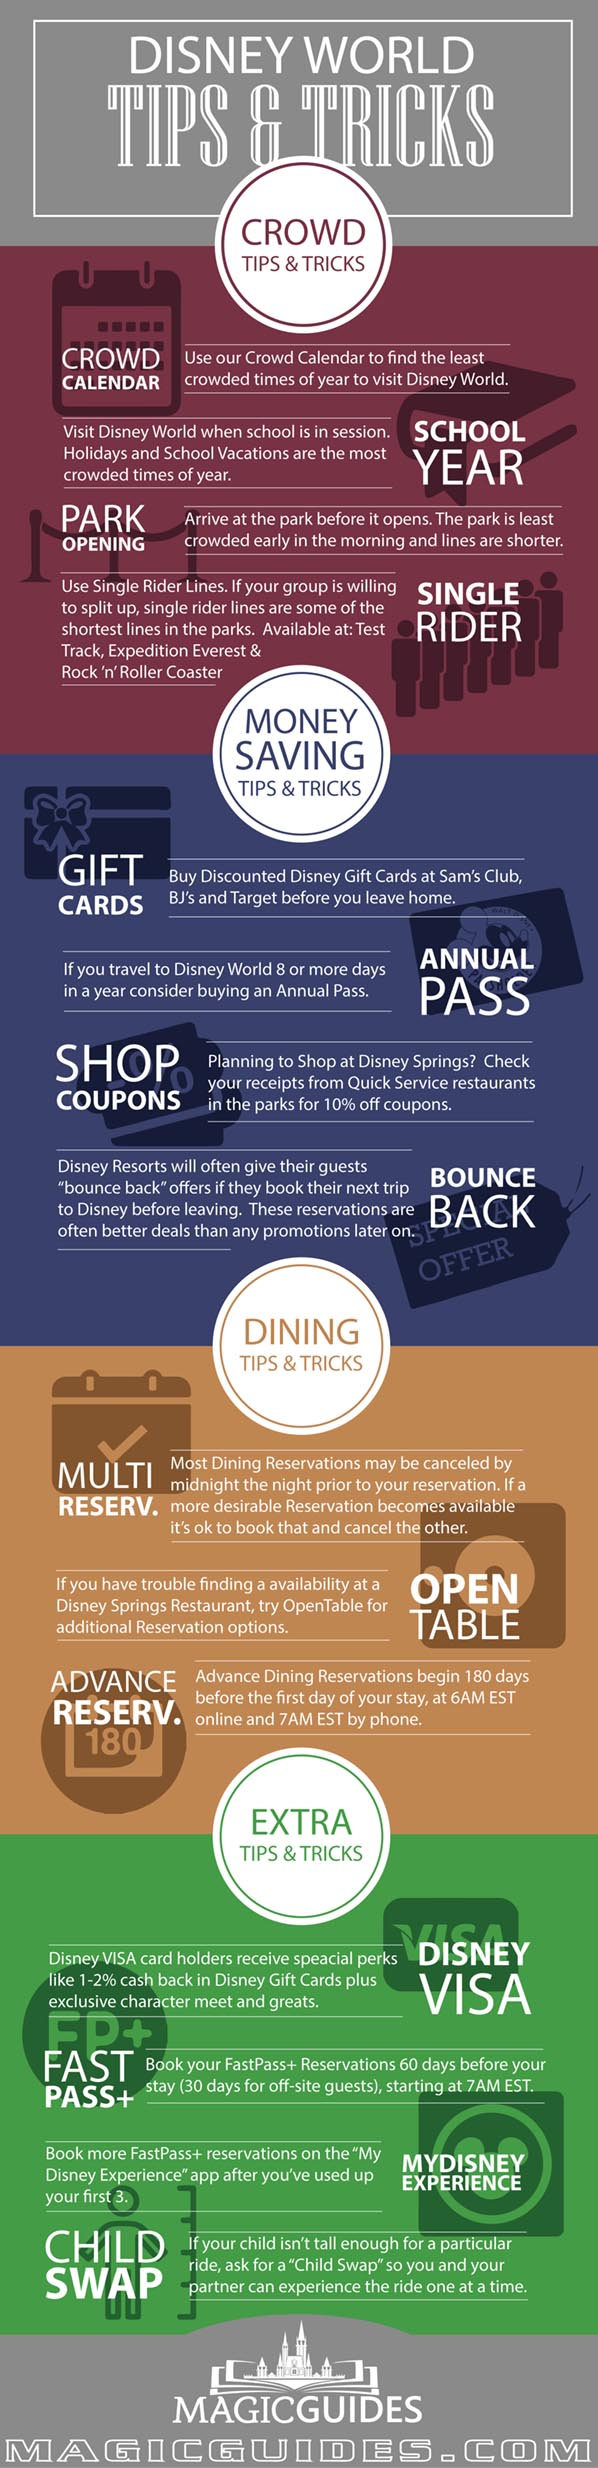 Disney World Tips and Tricks for 2019 [Best Vacation Secrets